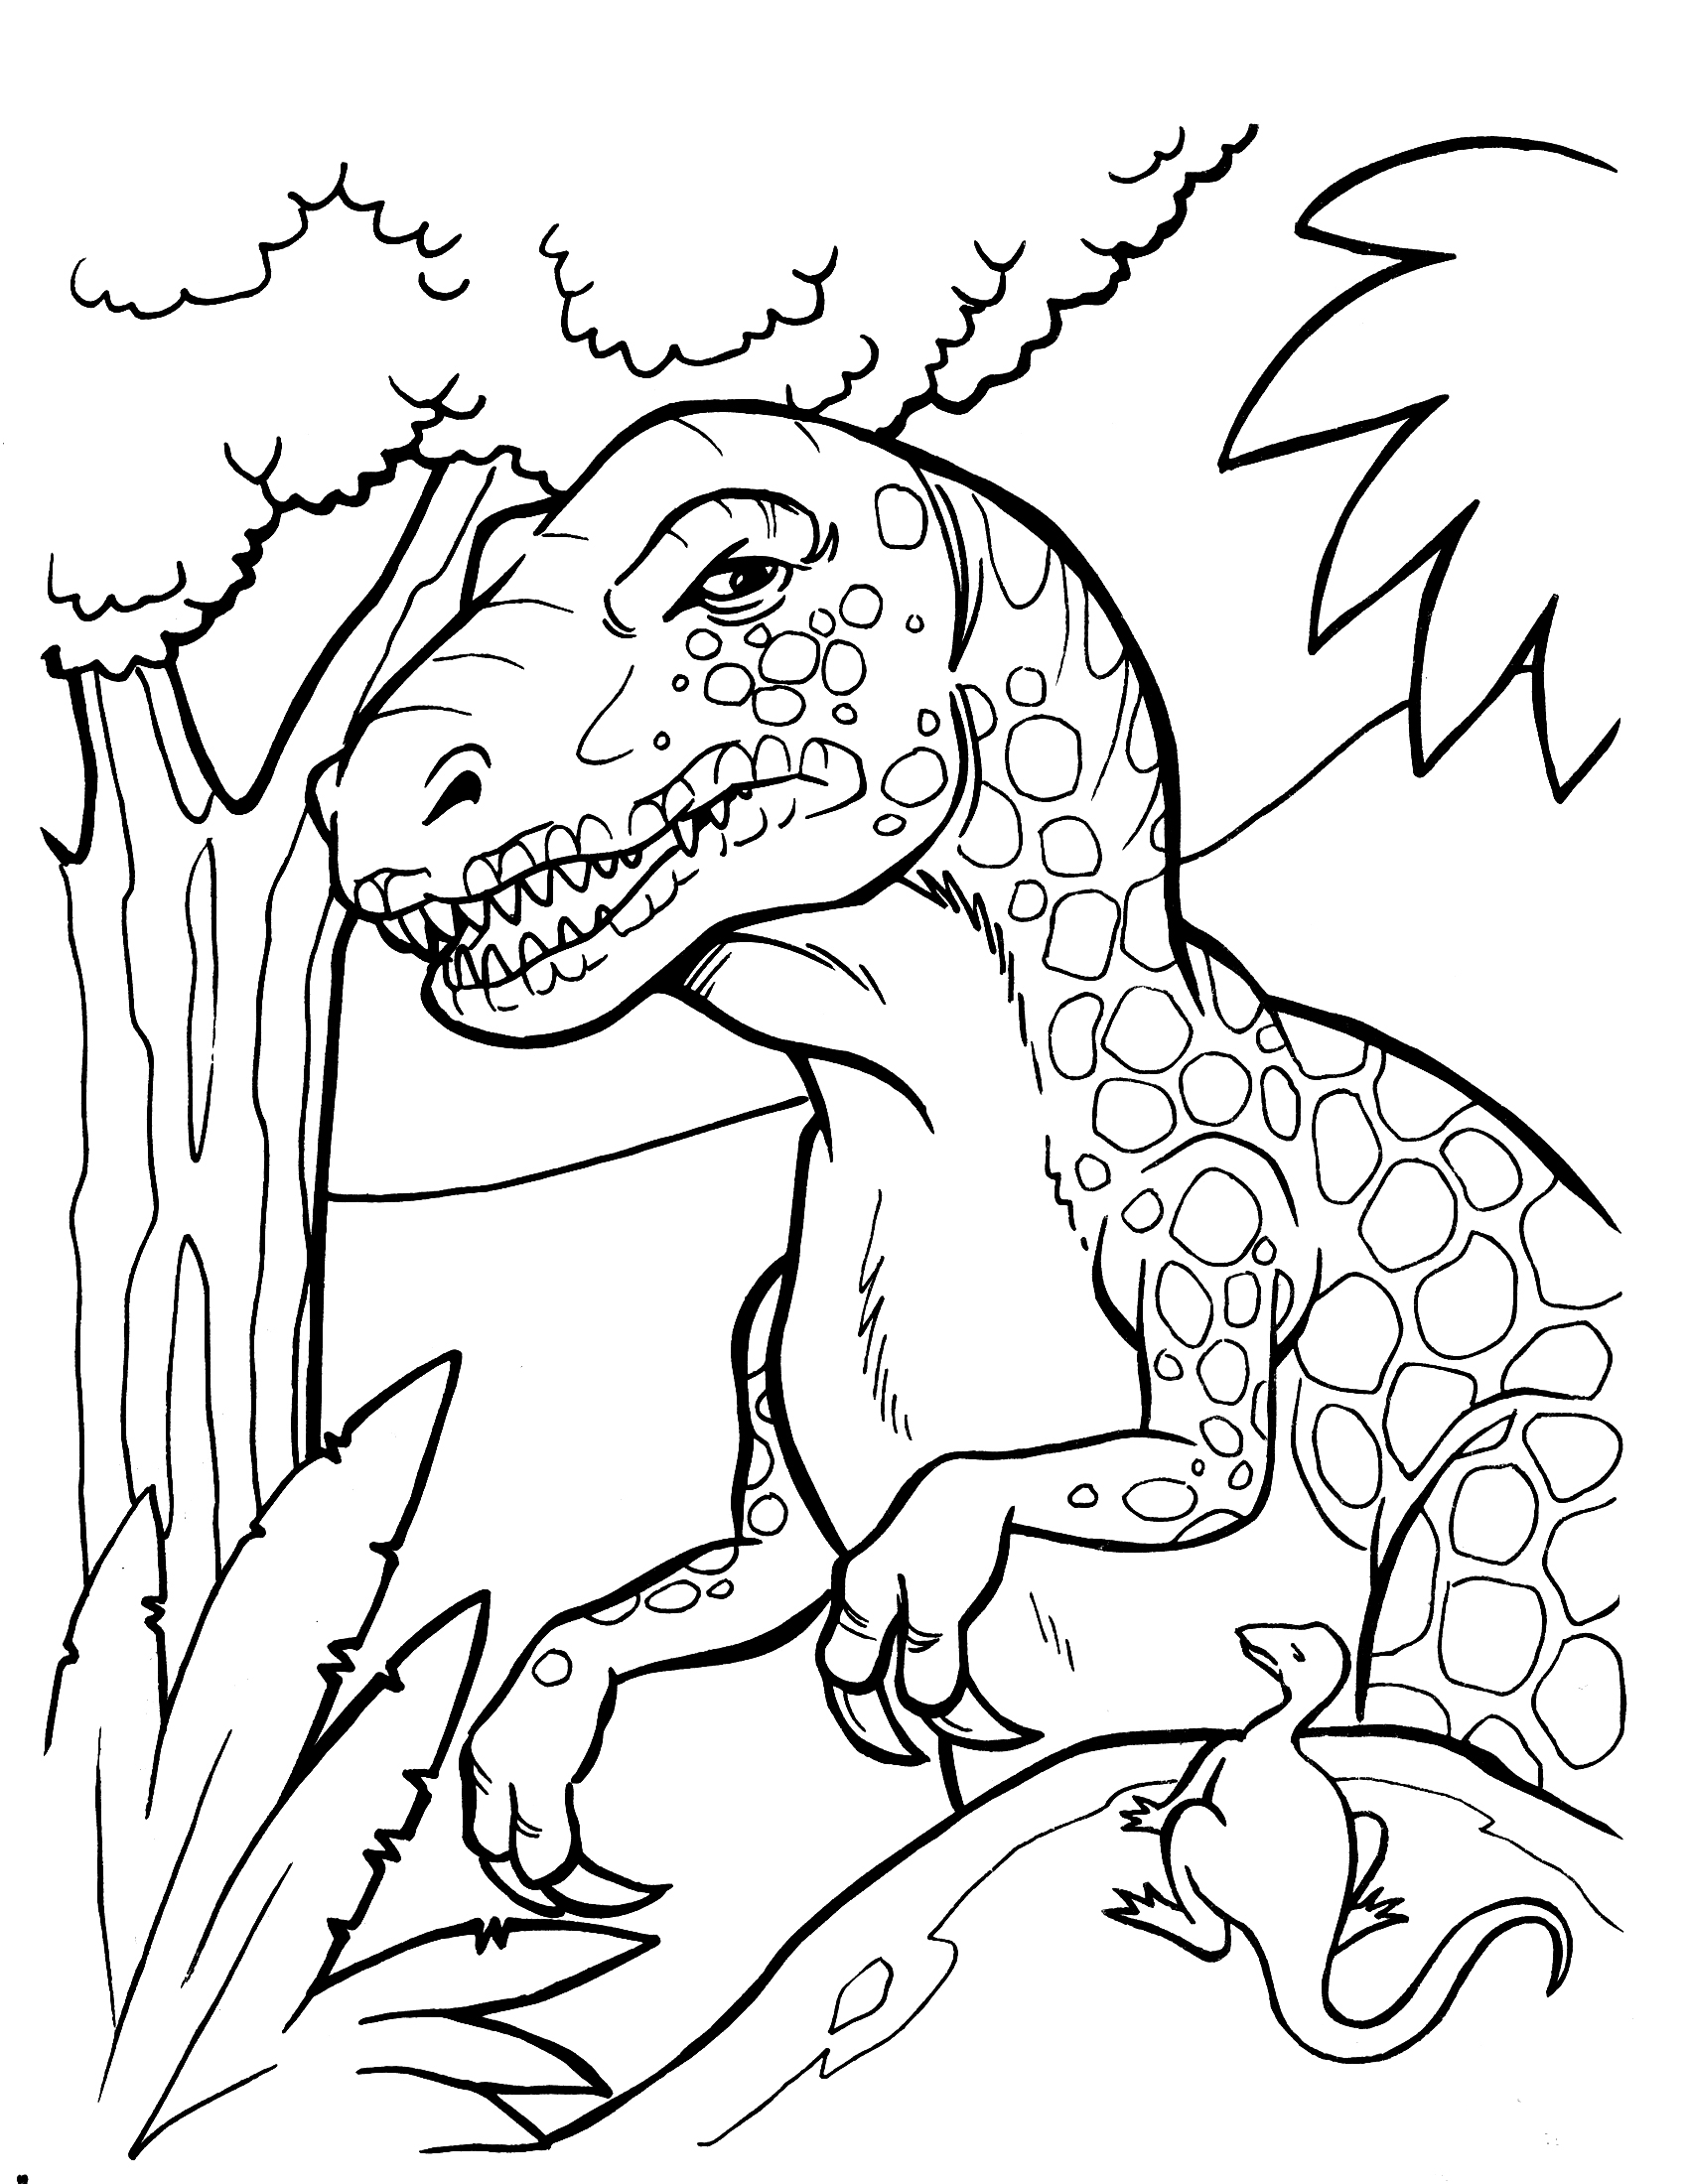 coloring dinosaur free printables free printable dinosaur coloring pages for kids printables dinosaur free coloring